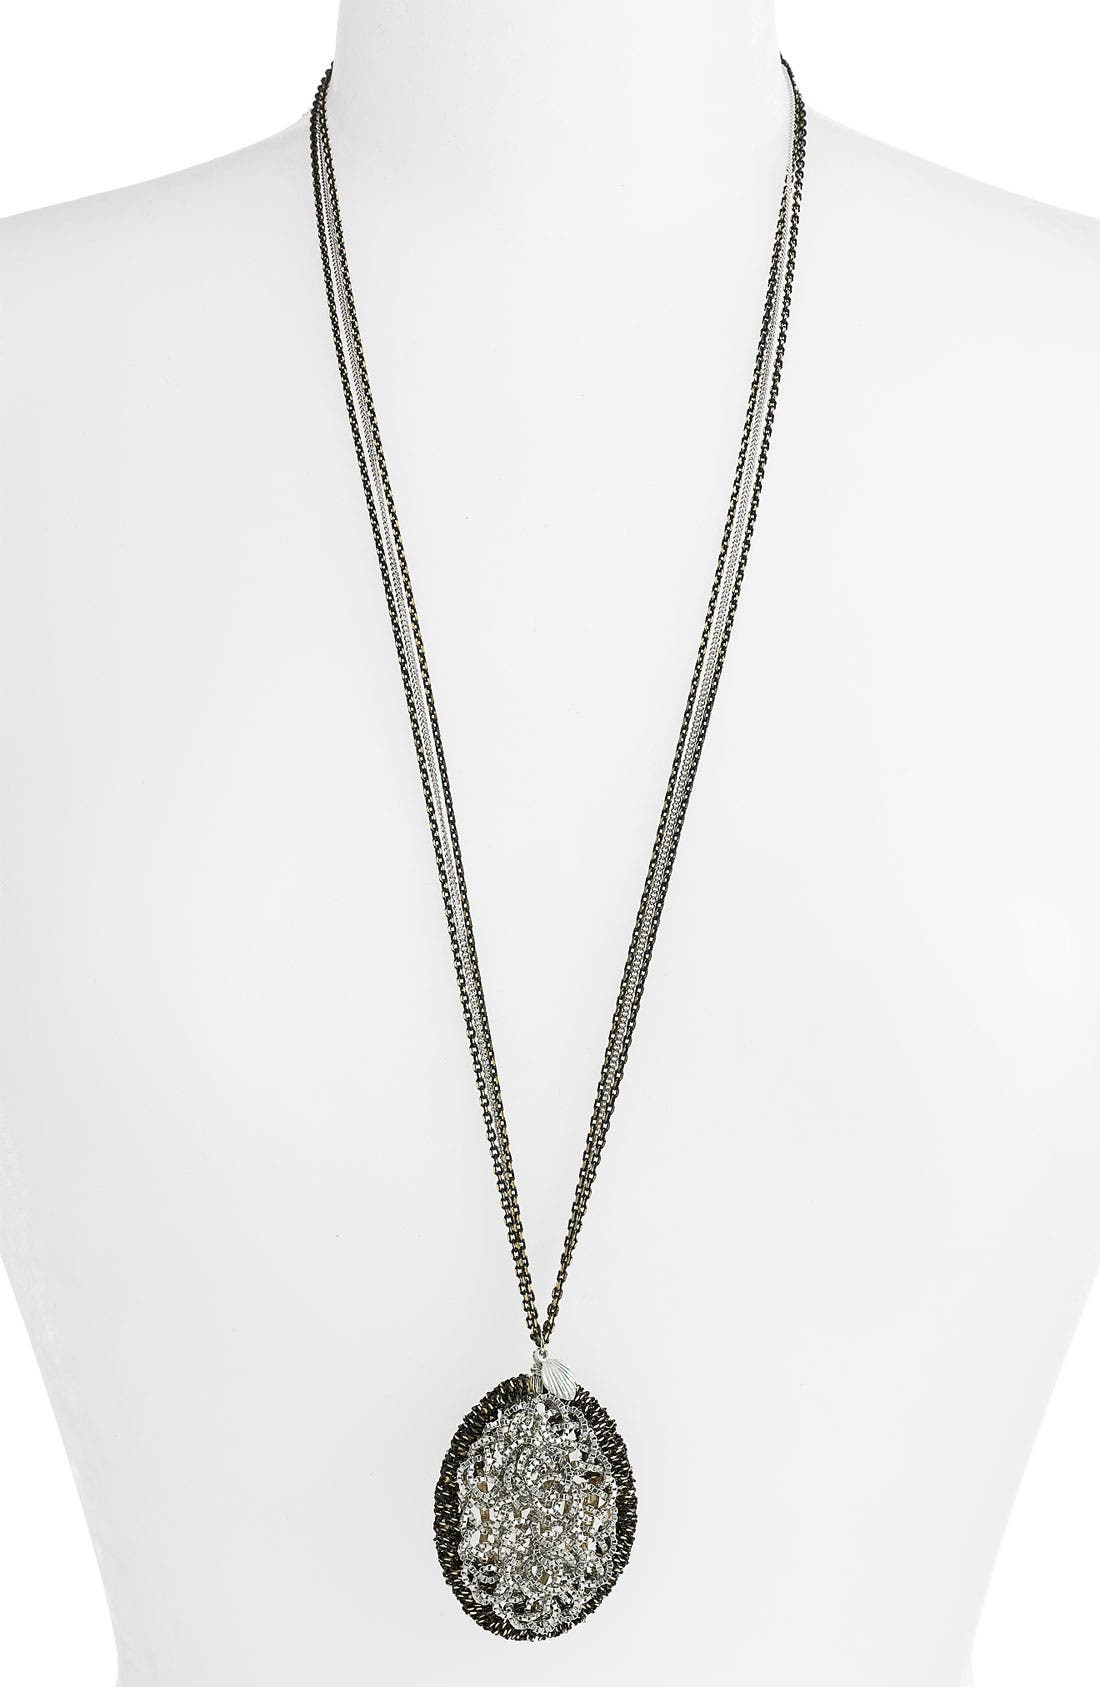 CARA, Couture Twisted Chain Pendant Necklace, Main thumbnail 1, color, 040